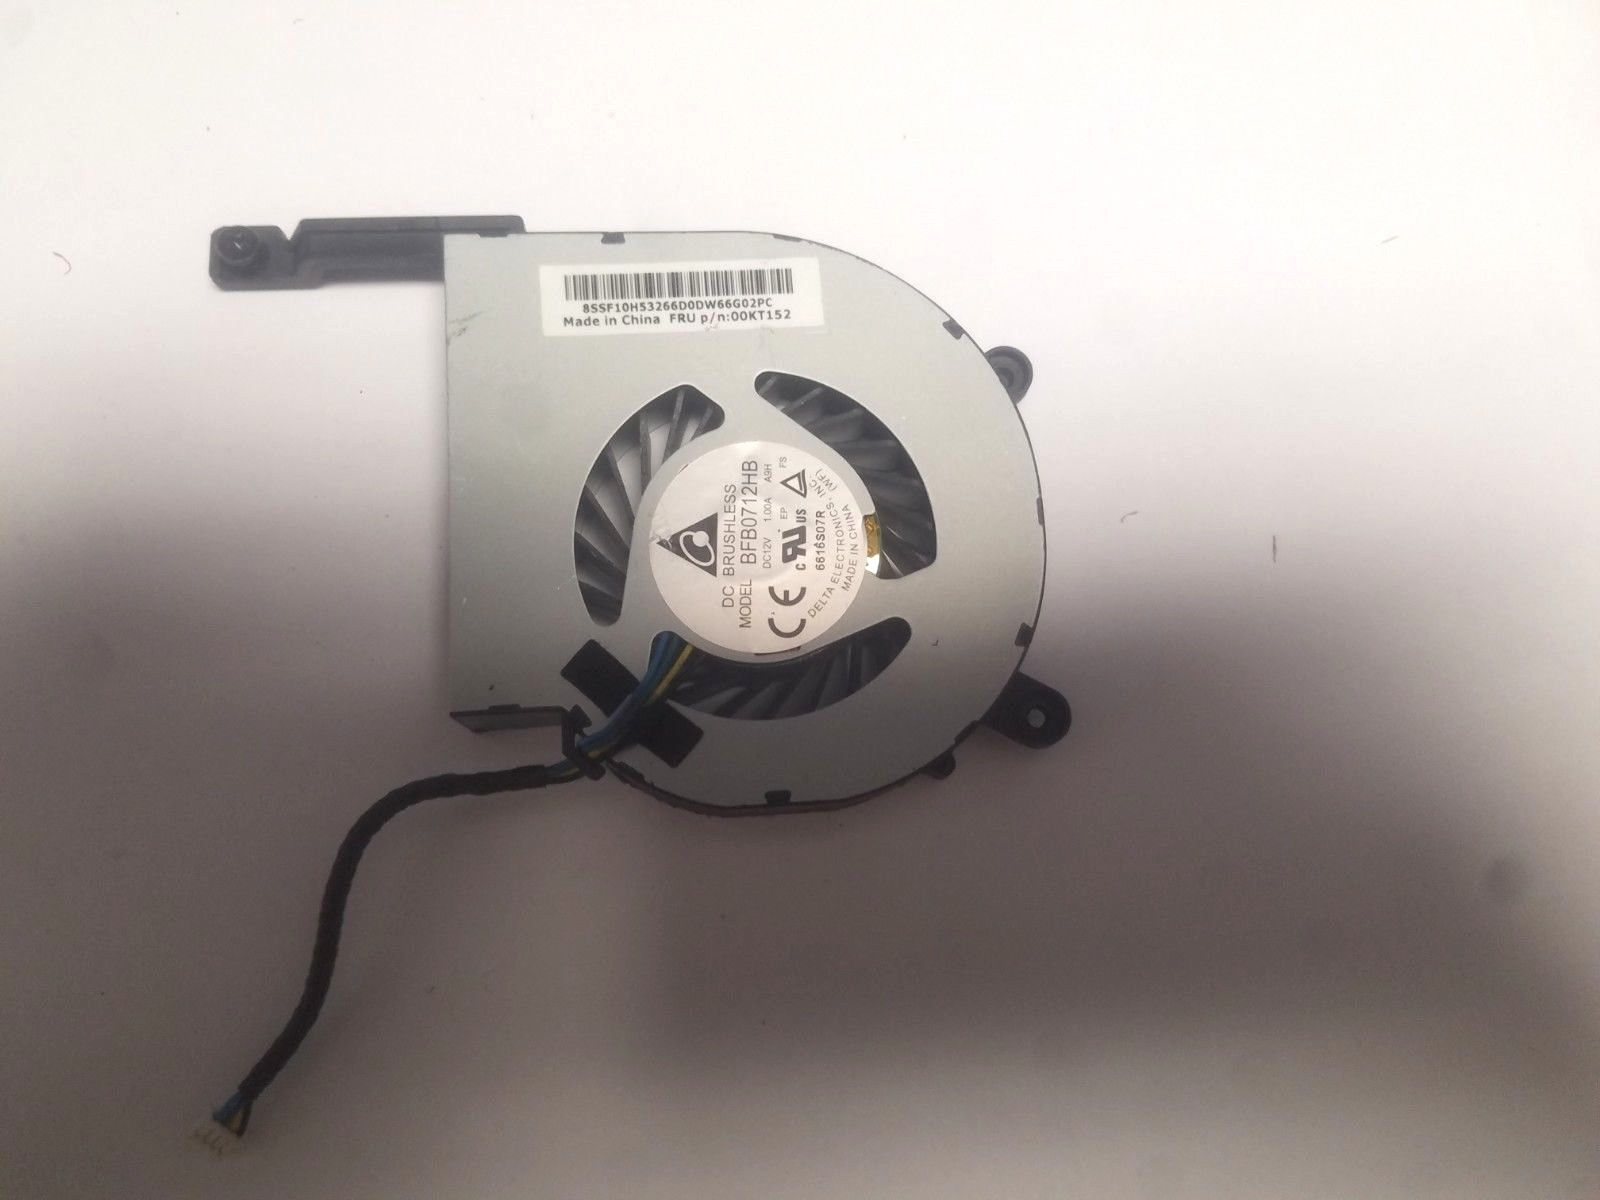 Lenovo ThinkCentre M900 Thinkserver TINY M700 8014 Tiny3 E50-05 M715Q BAZA0814B2U BFB0712HB A9H 00KT152 CPU Cooling Fan